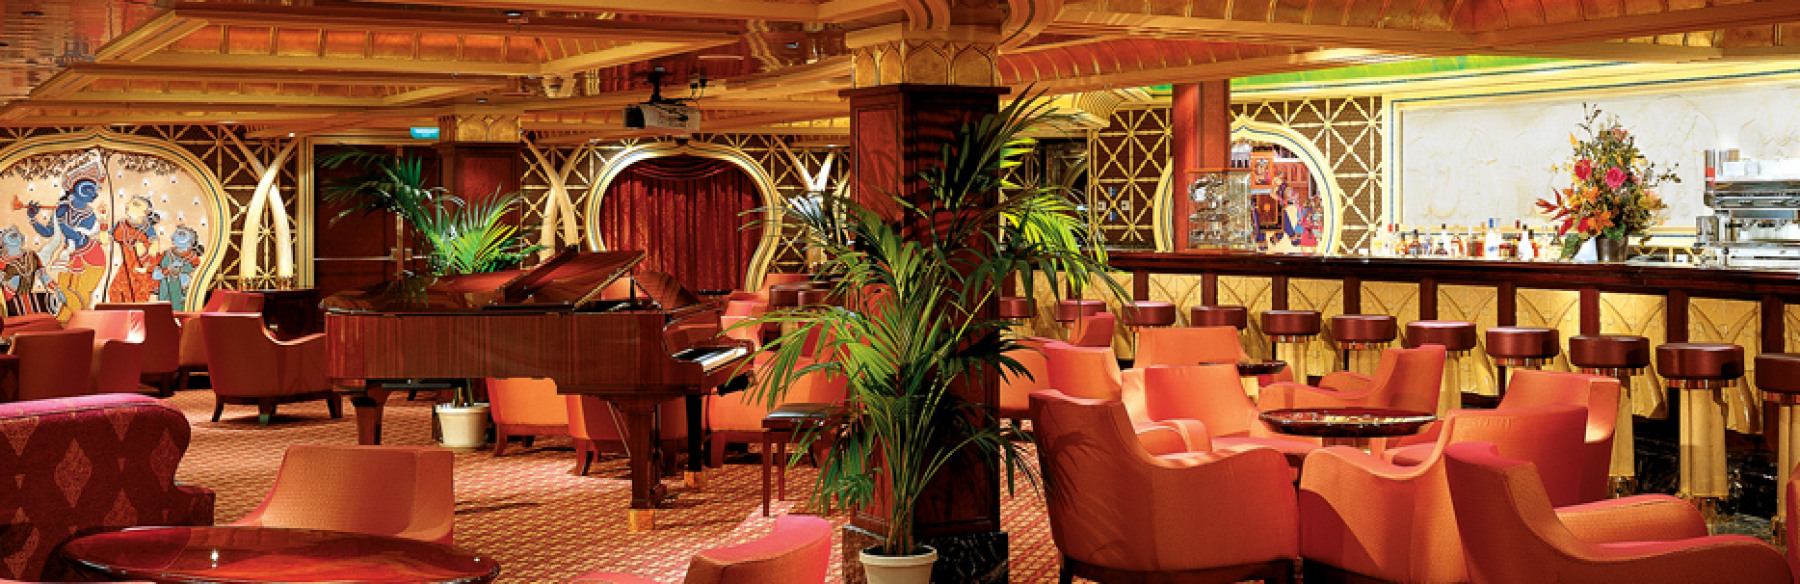 Carnival Glory Ivory Club Lounge.jpg